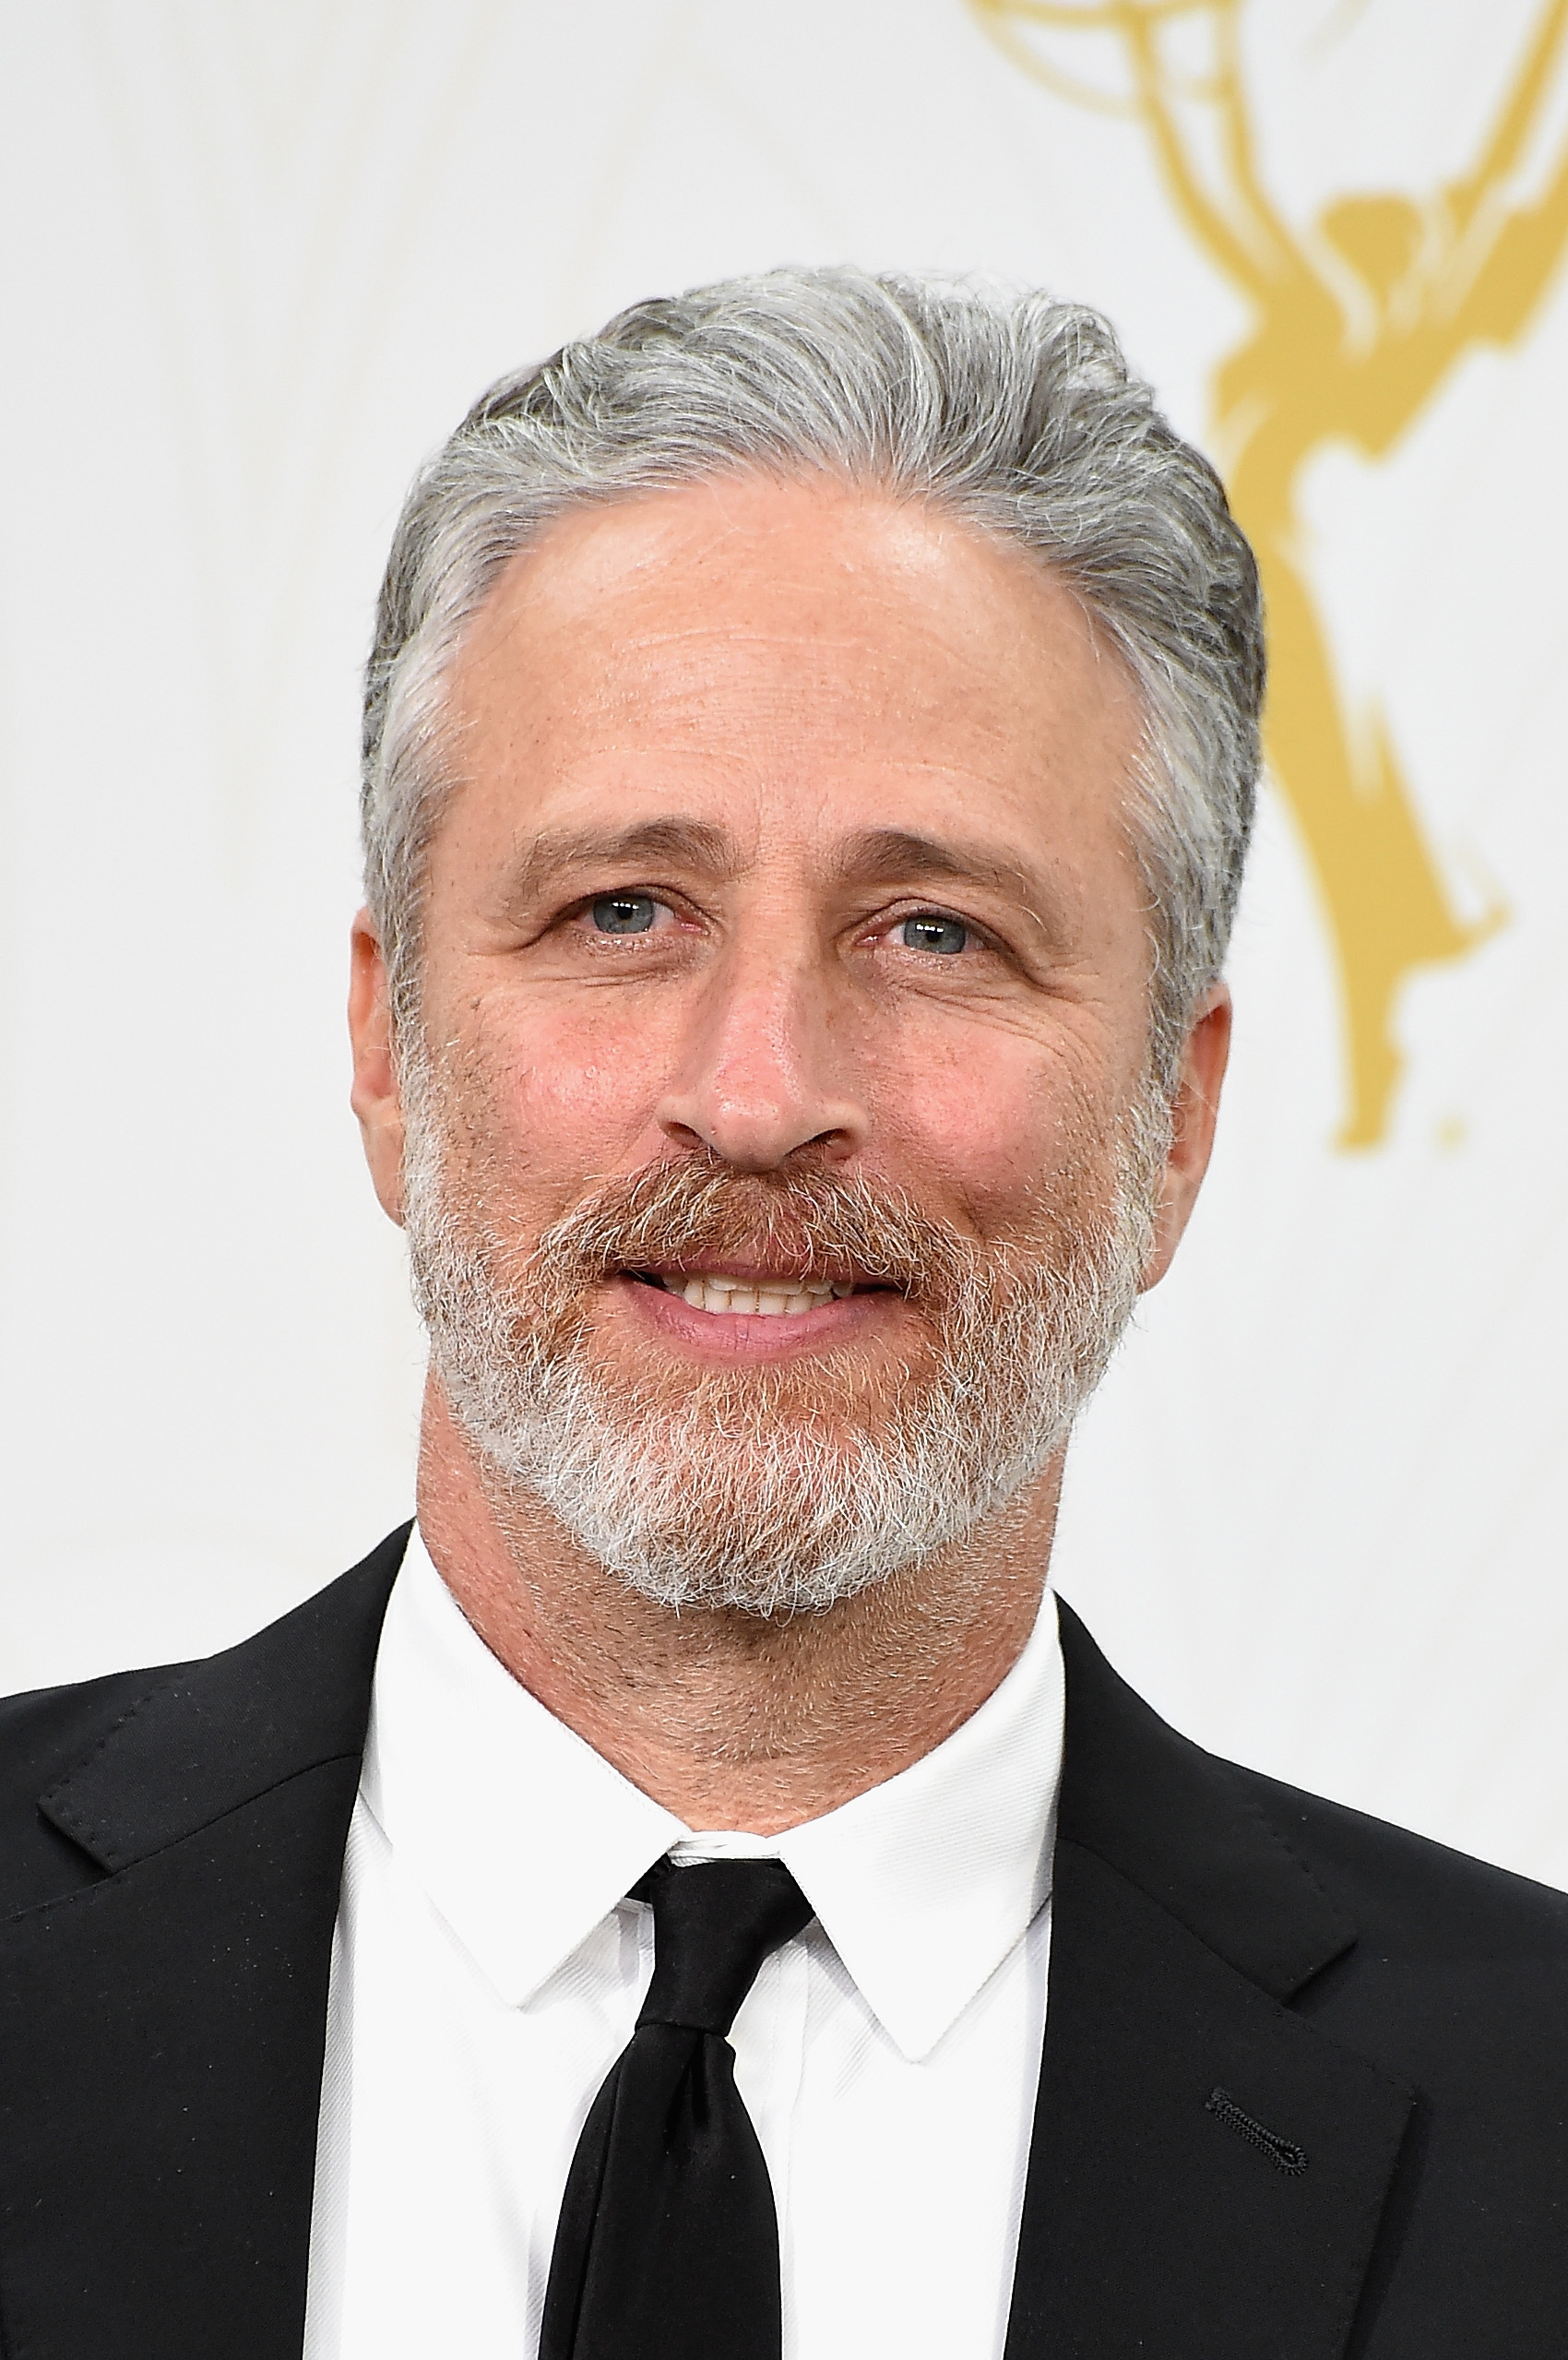 Jon Stewart at the 67th Annual Primetime Emmy Awards in Los Angeles on Sept. 20, 2015.